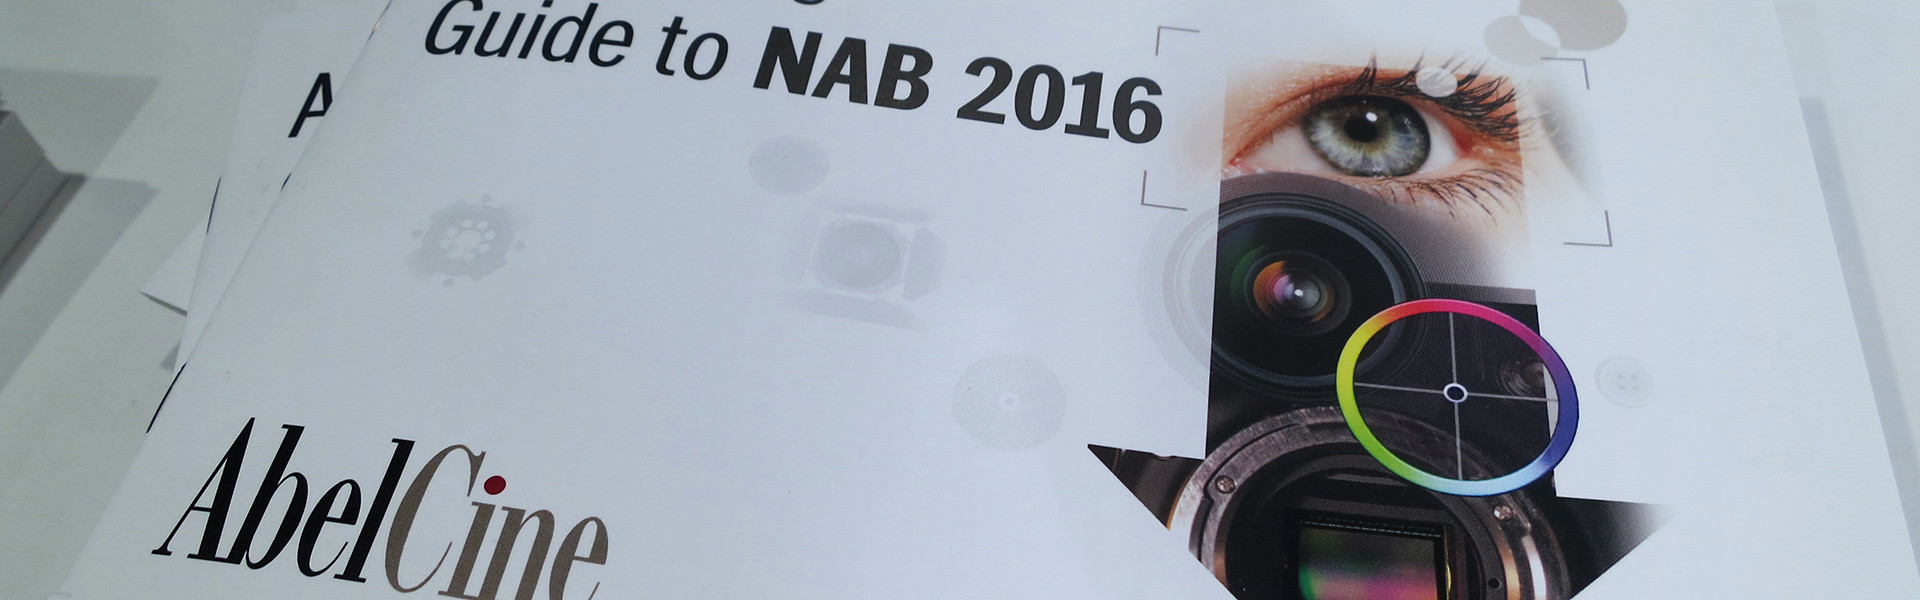 Header image for article NAB 2016 Tech Talks at the AbelCine Booth: Sony